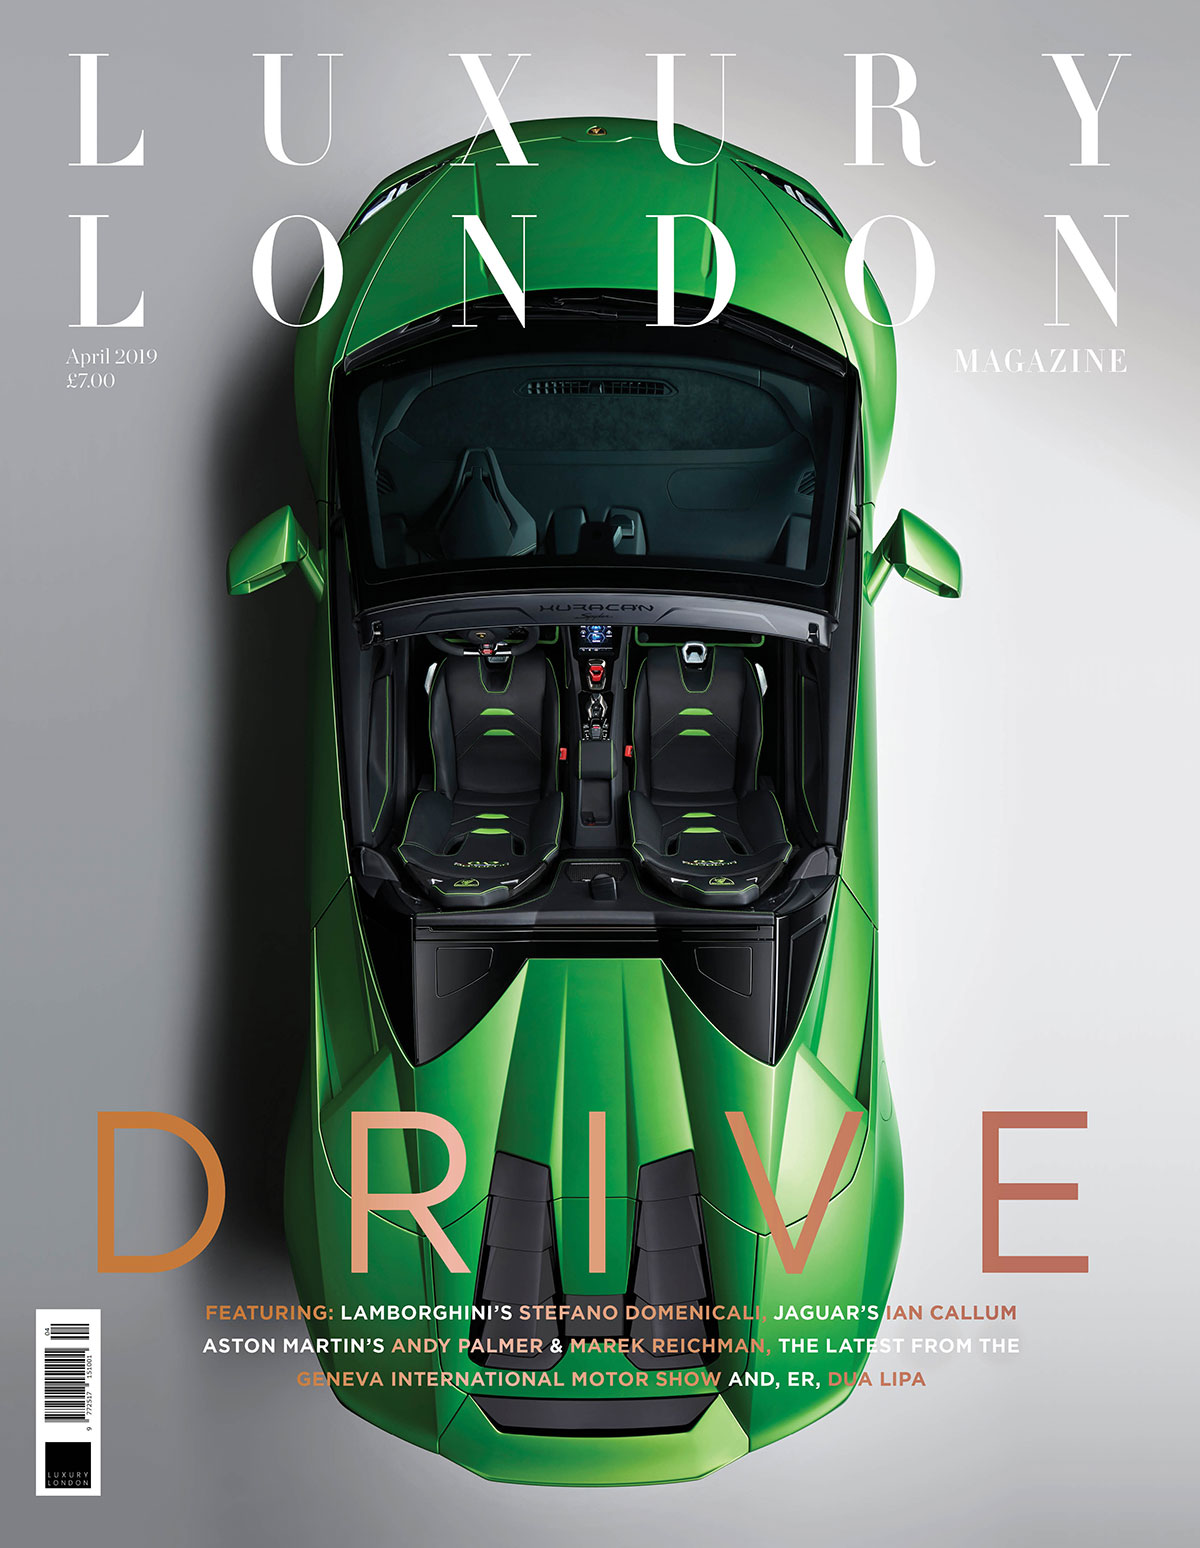 Luxury London Magazine (Hard Copy)